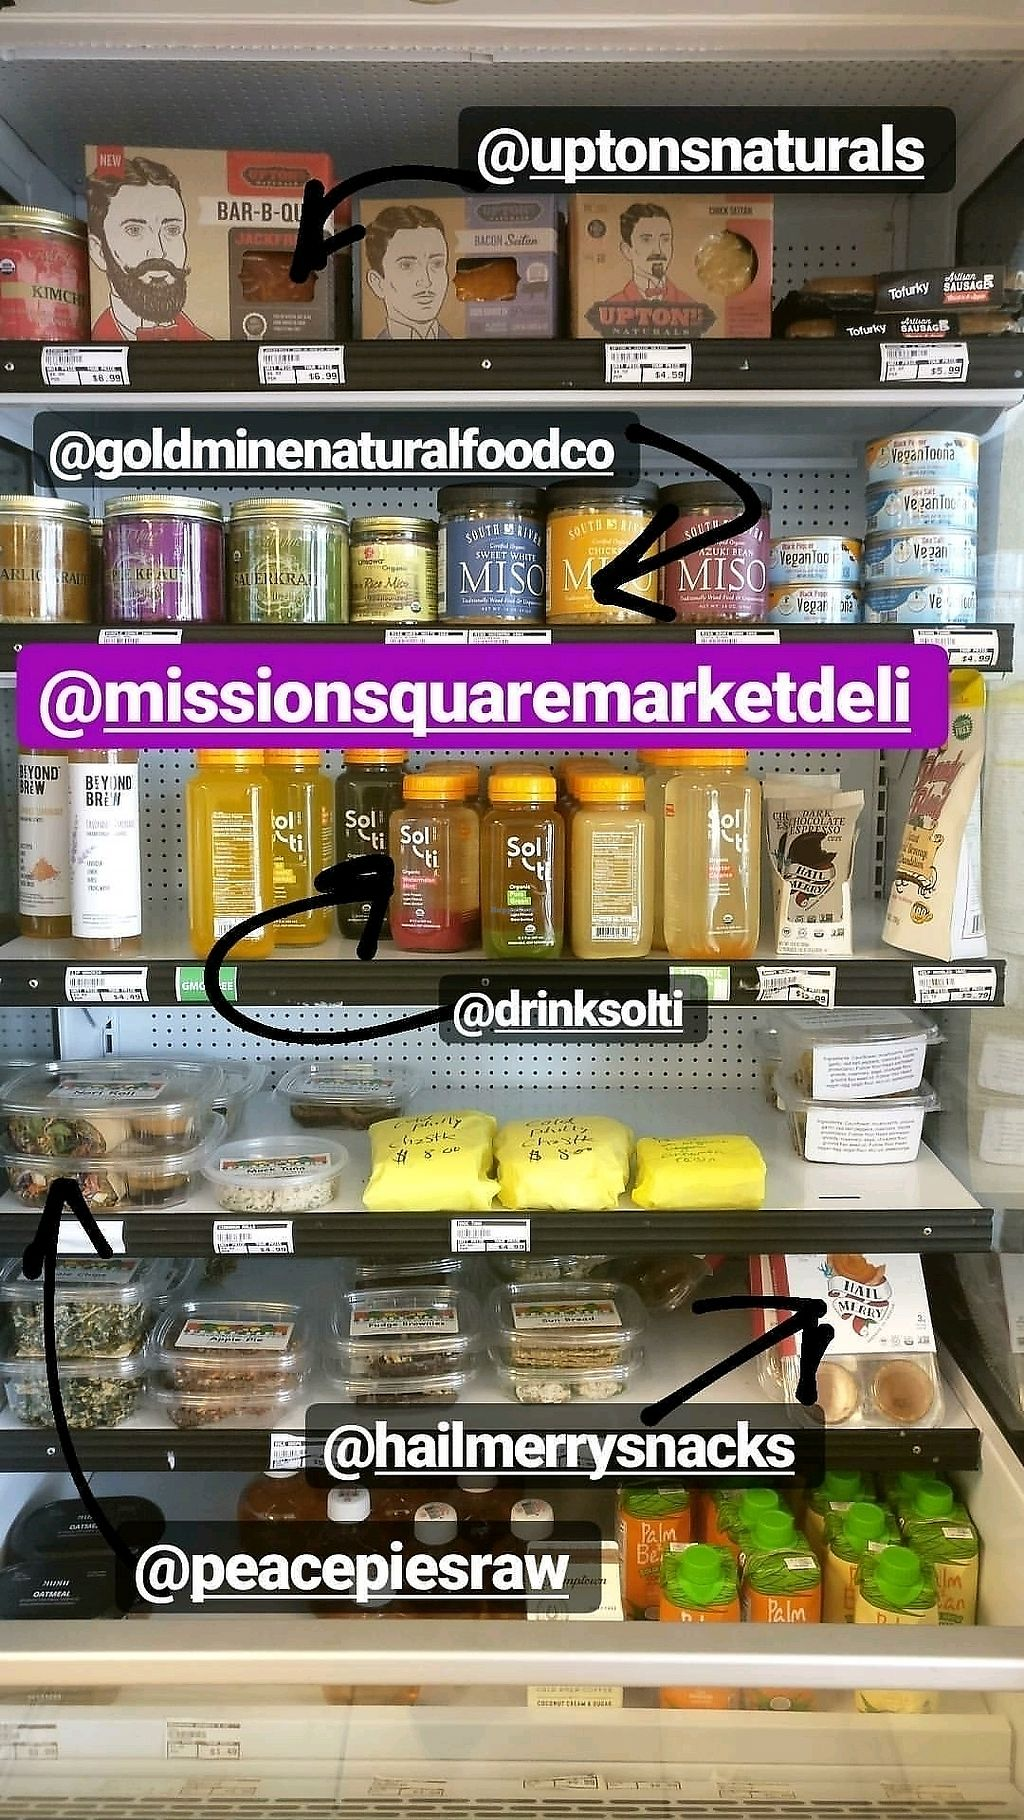 """Photo of Mission Square Market Vegan Deli  by <a href=""""/members/profile/KellyBone"""">KellyBone</a> <br/>vegan cold case <br/> September 10, 2017  - <a href='/contact/abuse/image/88946/302770'>Report</a>"""